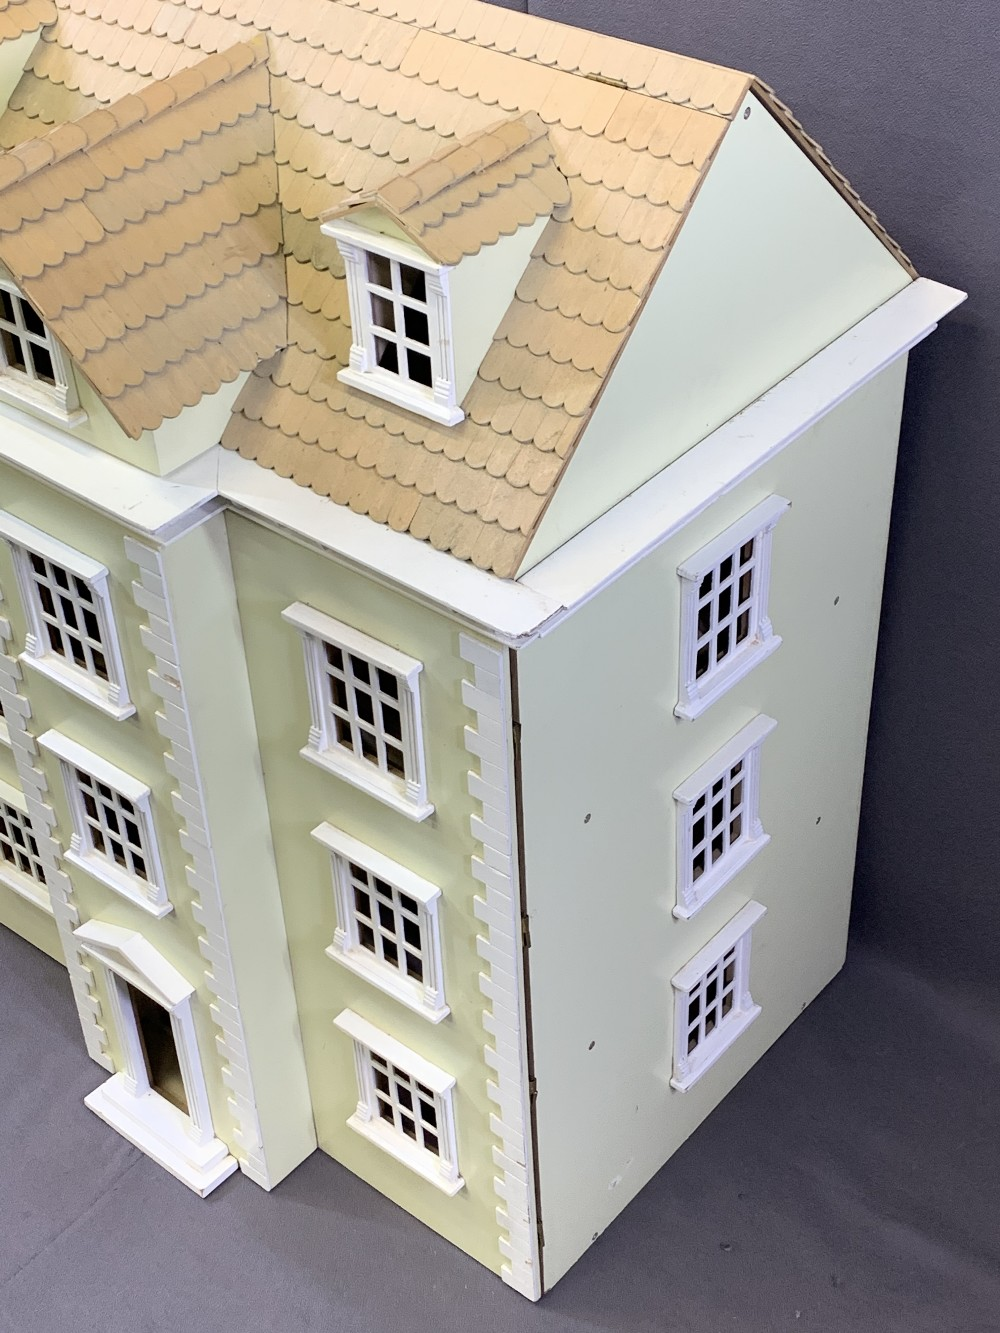 NICE QUALITY GEORGIAN STYLE DOLL'S/MINIATURES HOUSE, opening front and roof, 85.5cms overall H, - Image 4 of 5